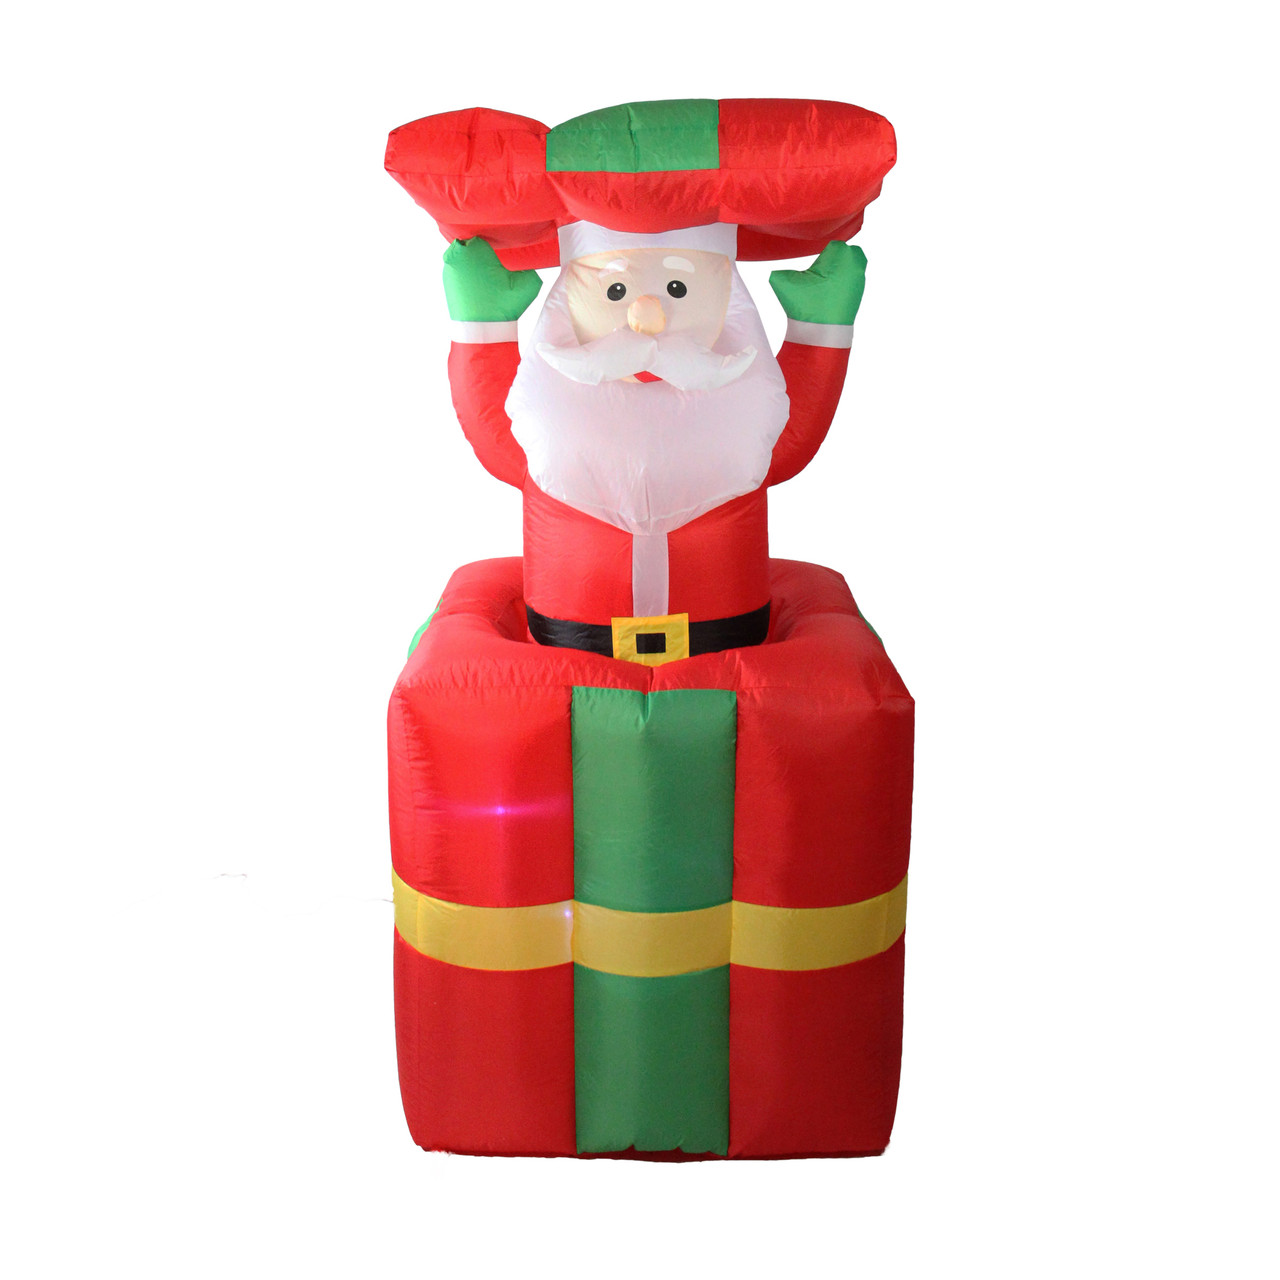 claus decoration is lifestyle standing this decor available decorations at uk it kingfisher shot stores figure santa christmas